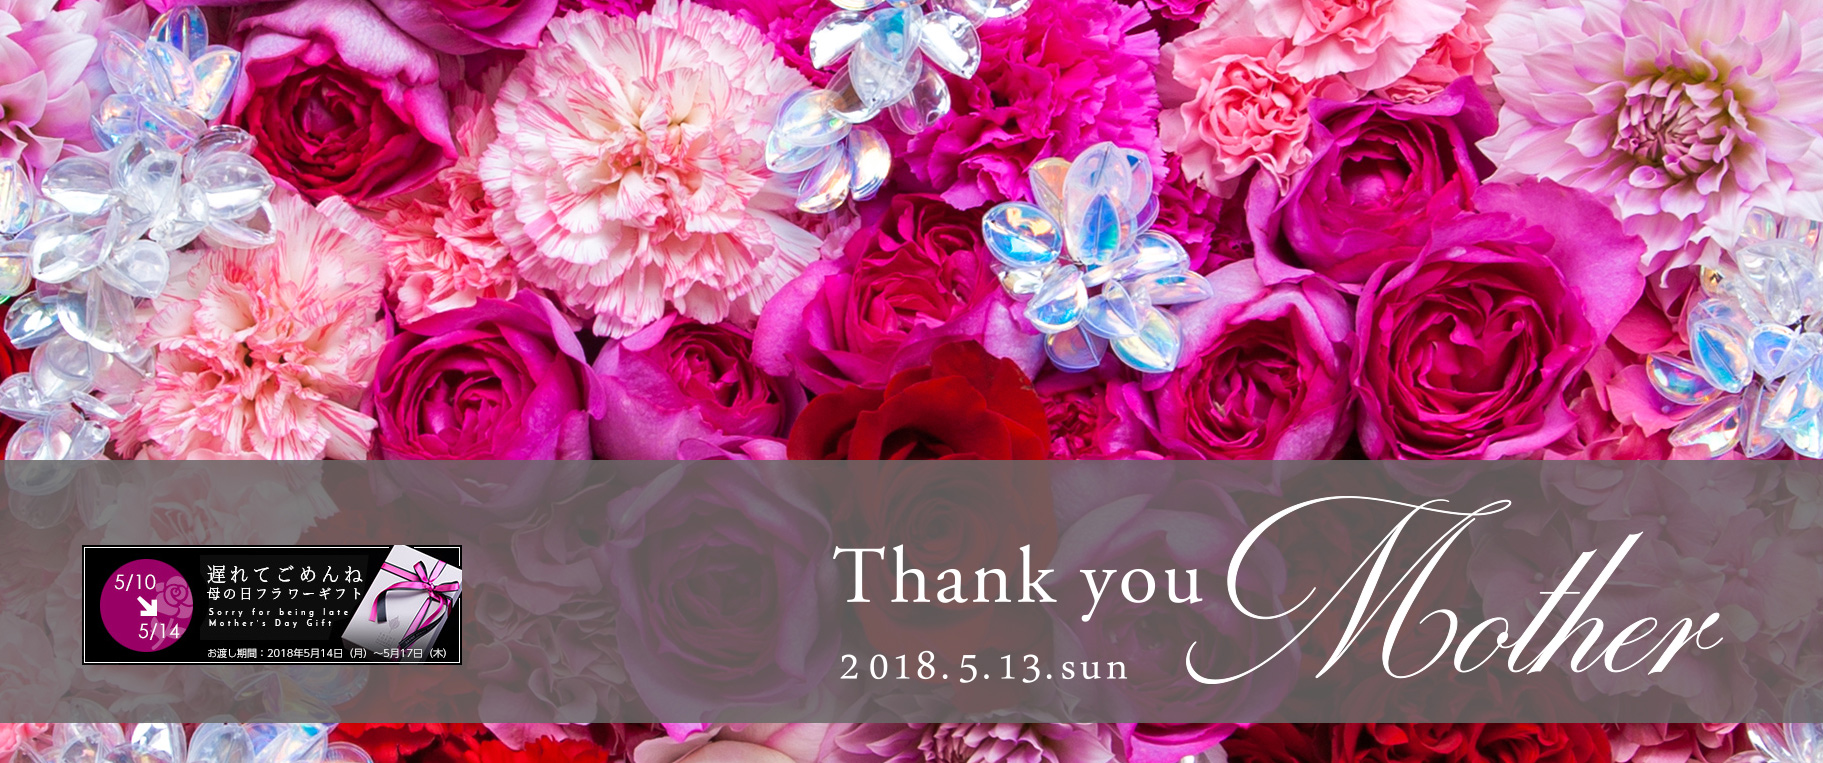 Thank you Mother 母の日フラワーギフト特集